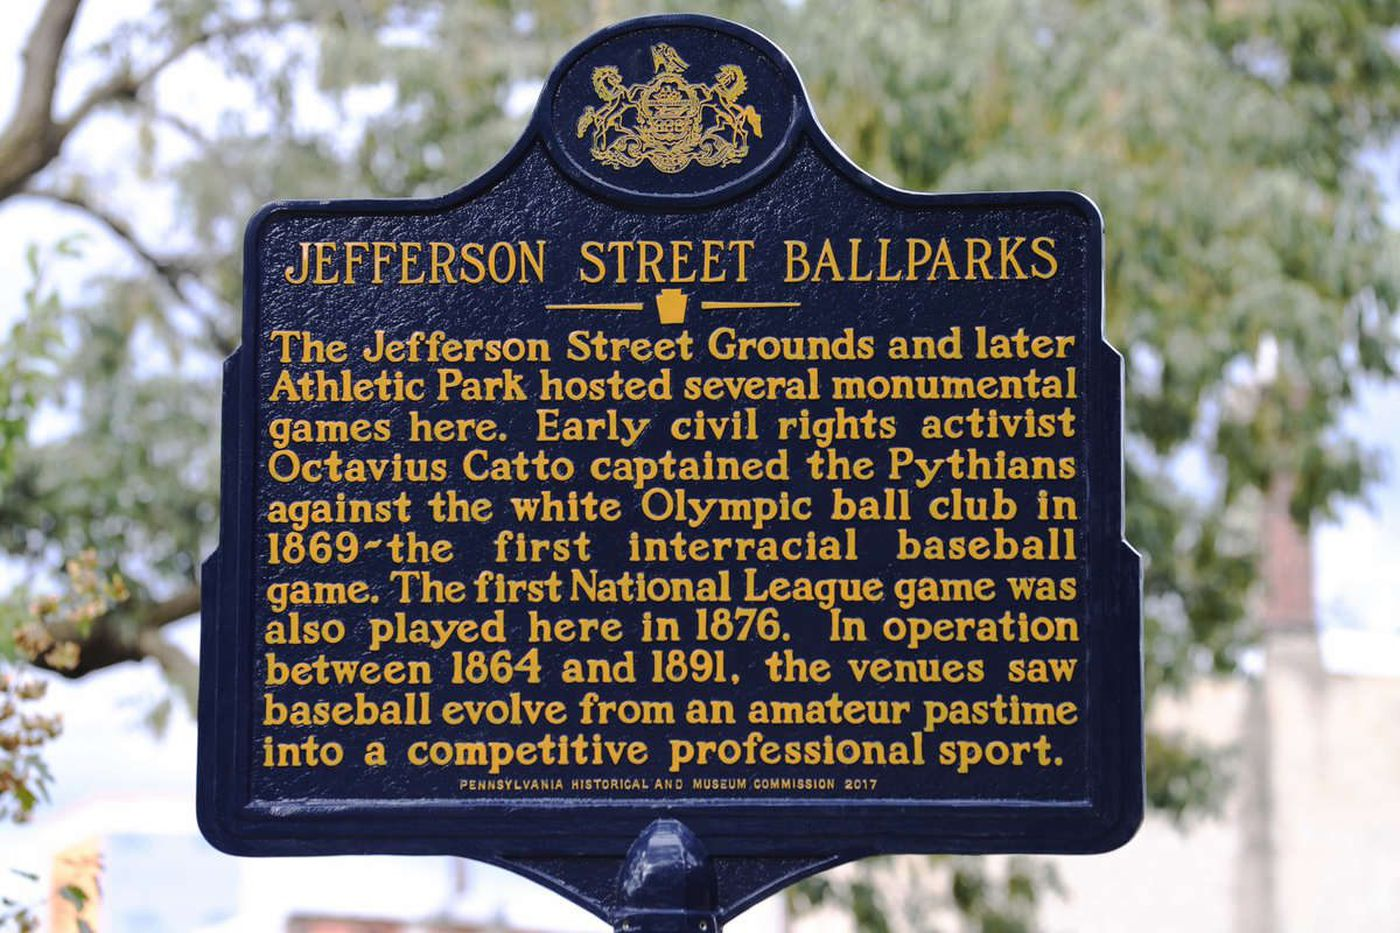 Honoring a Philly field where baseball brought races together